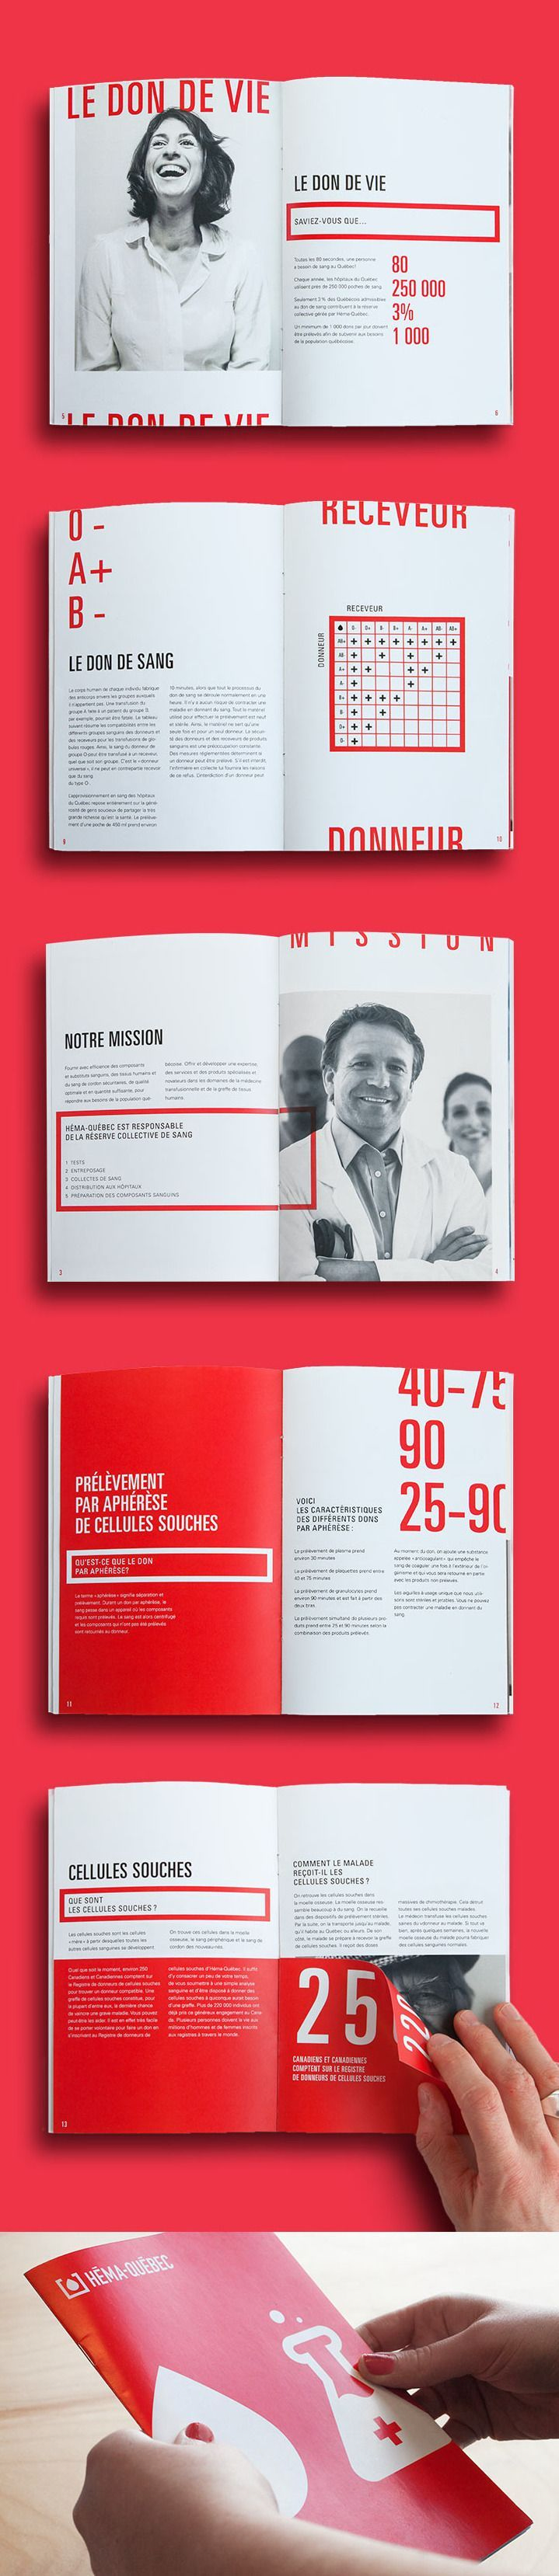 Héma-Québec by Ulys Bourassa Cousin Great bold strong type, thick rules, bright color accents. BB+